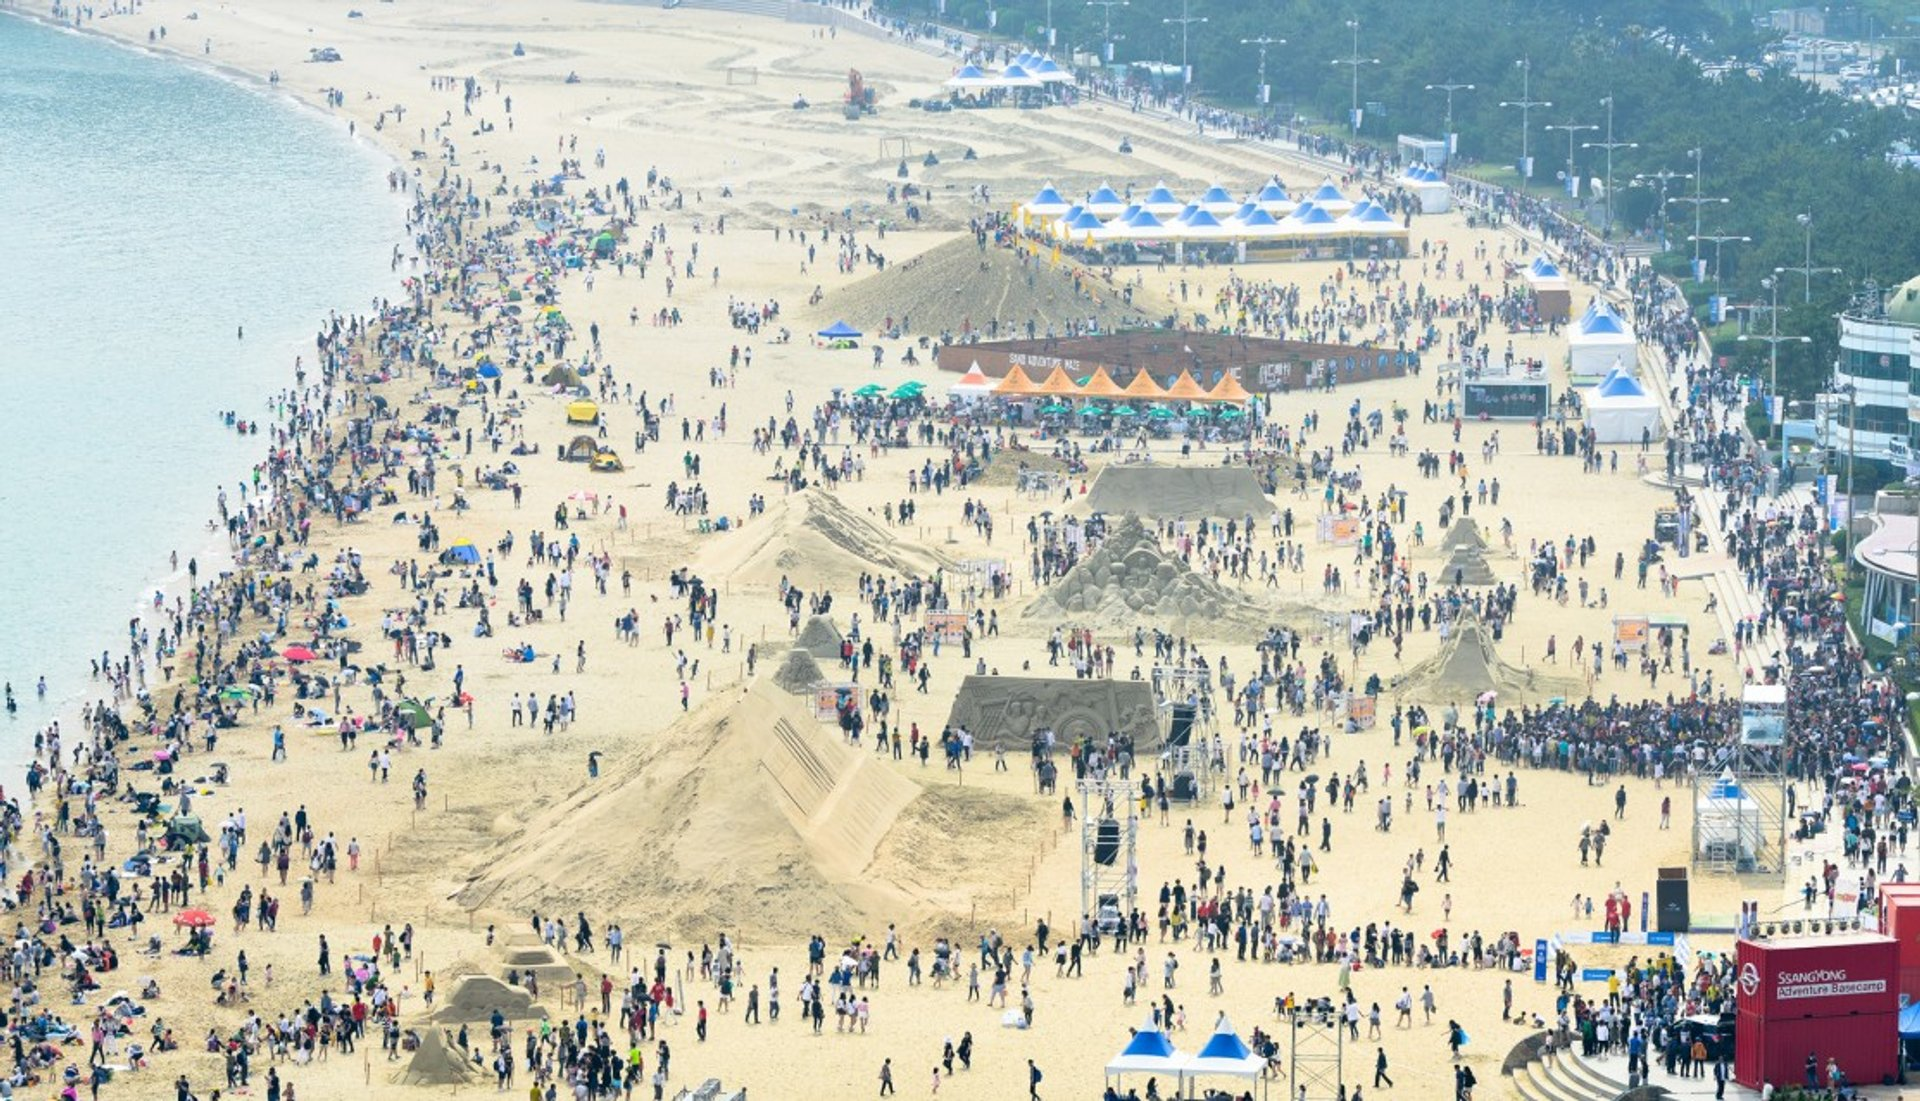 Haeundae Sand Festival 2019 in South Korea - Dates & Map